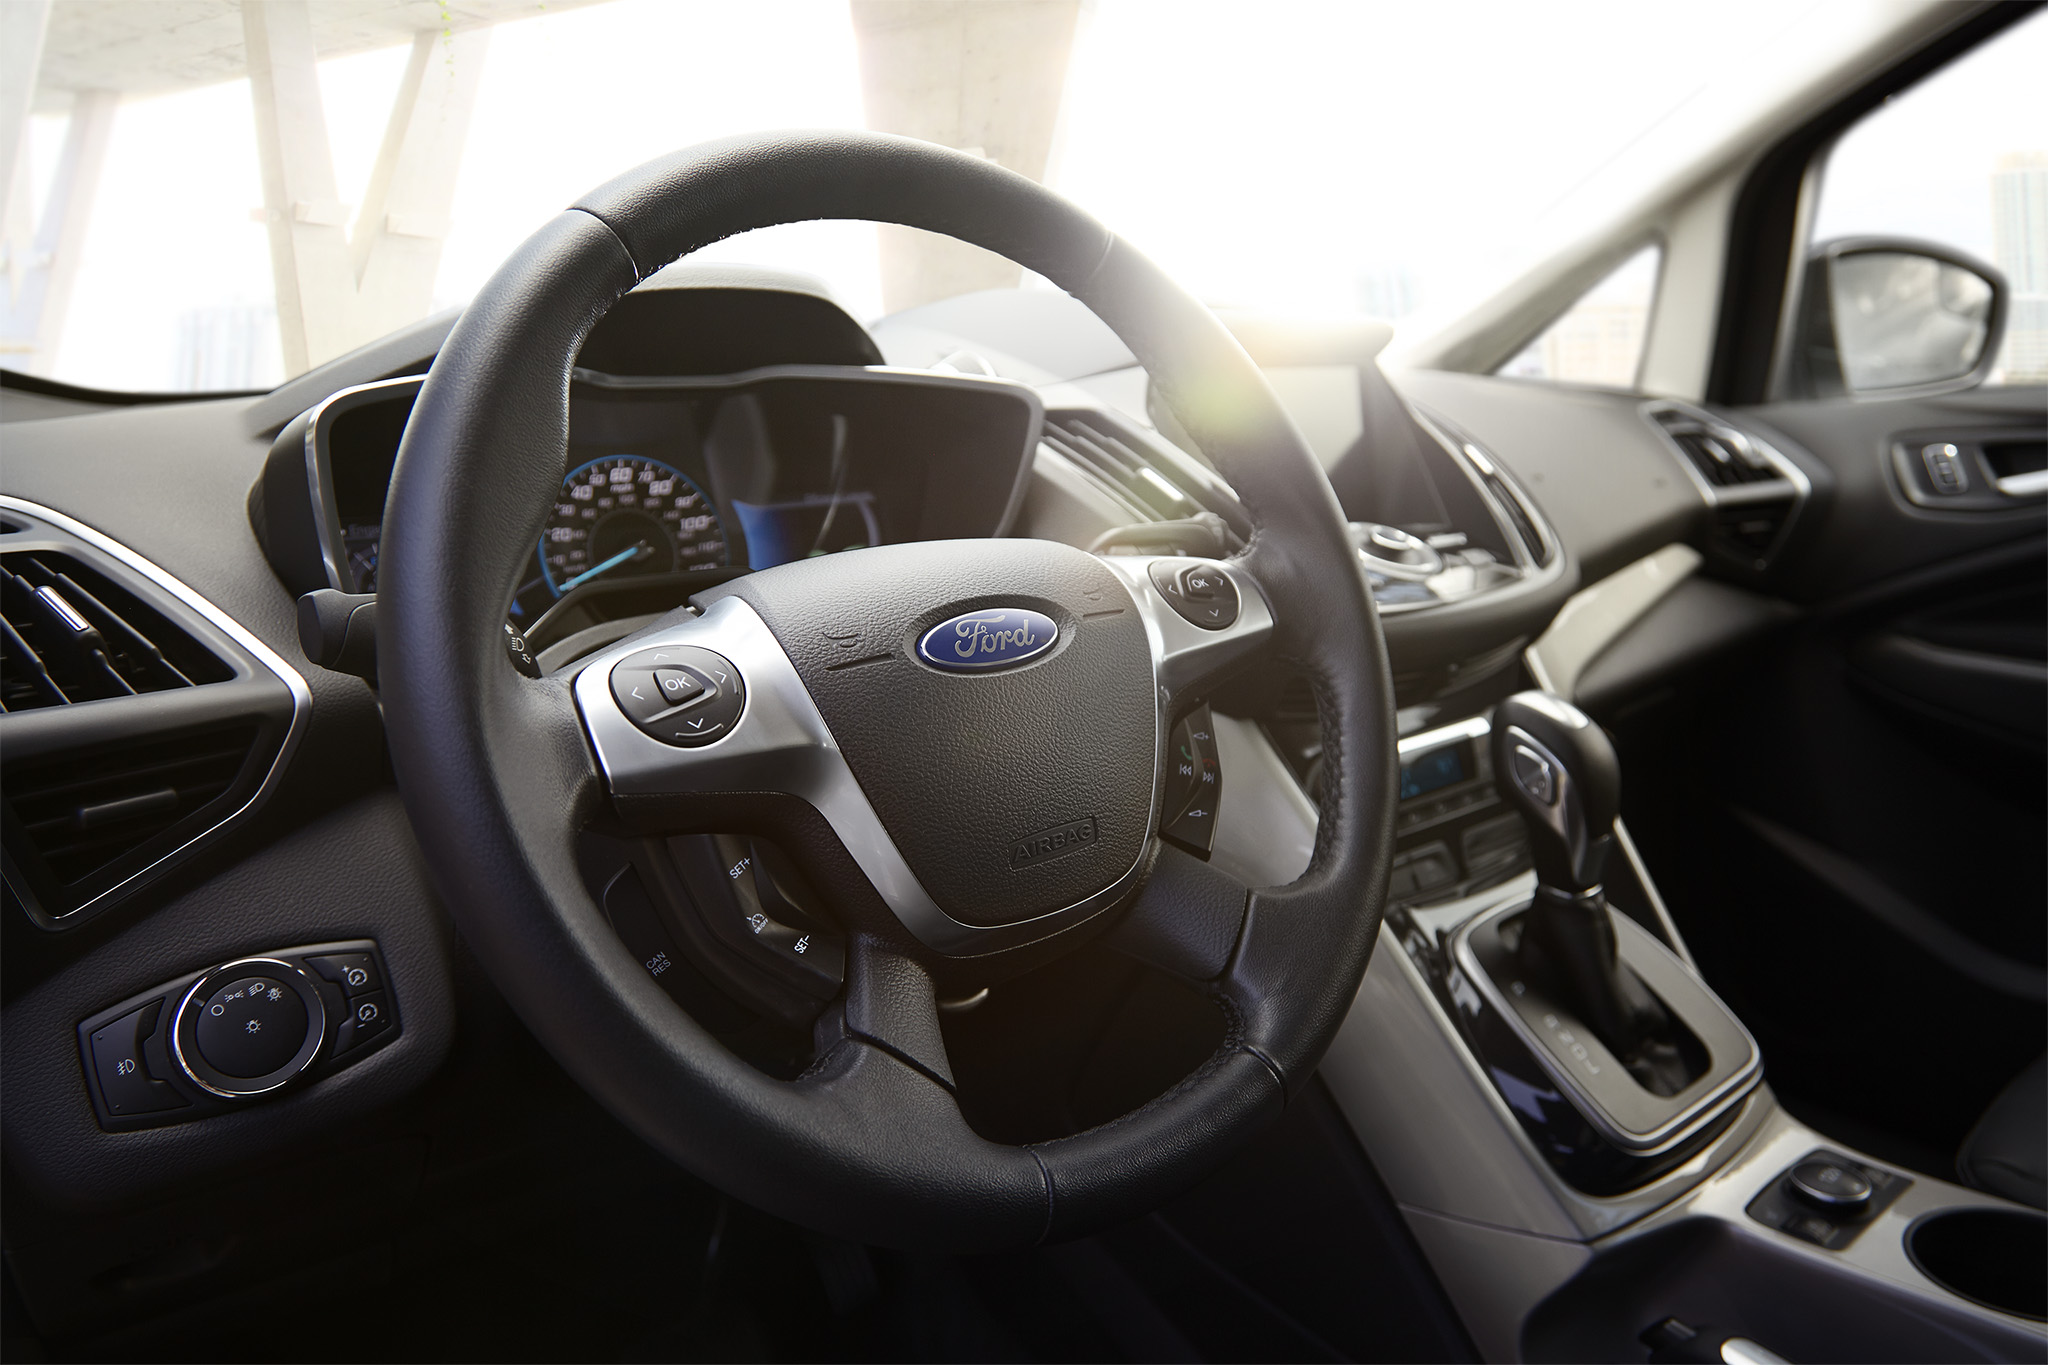 1-Ford_C-Max_St_Whl_COMP_w1a